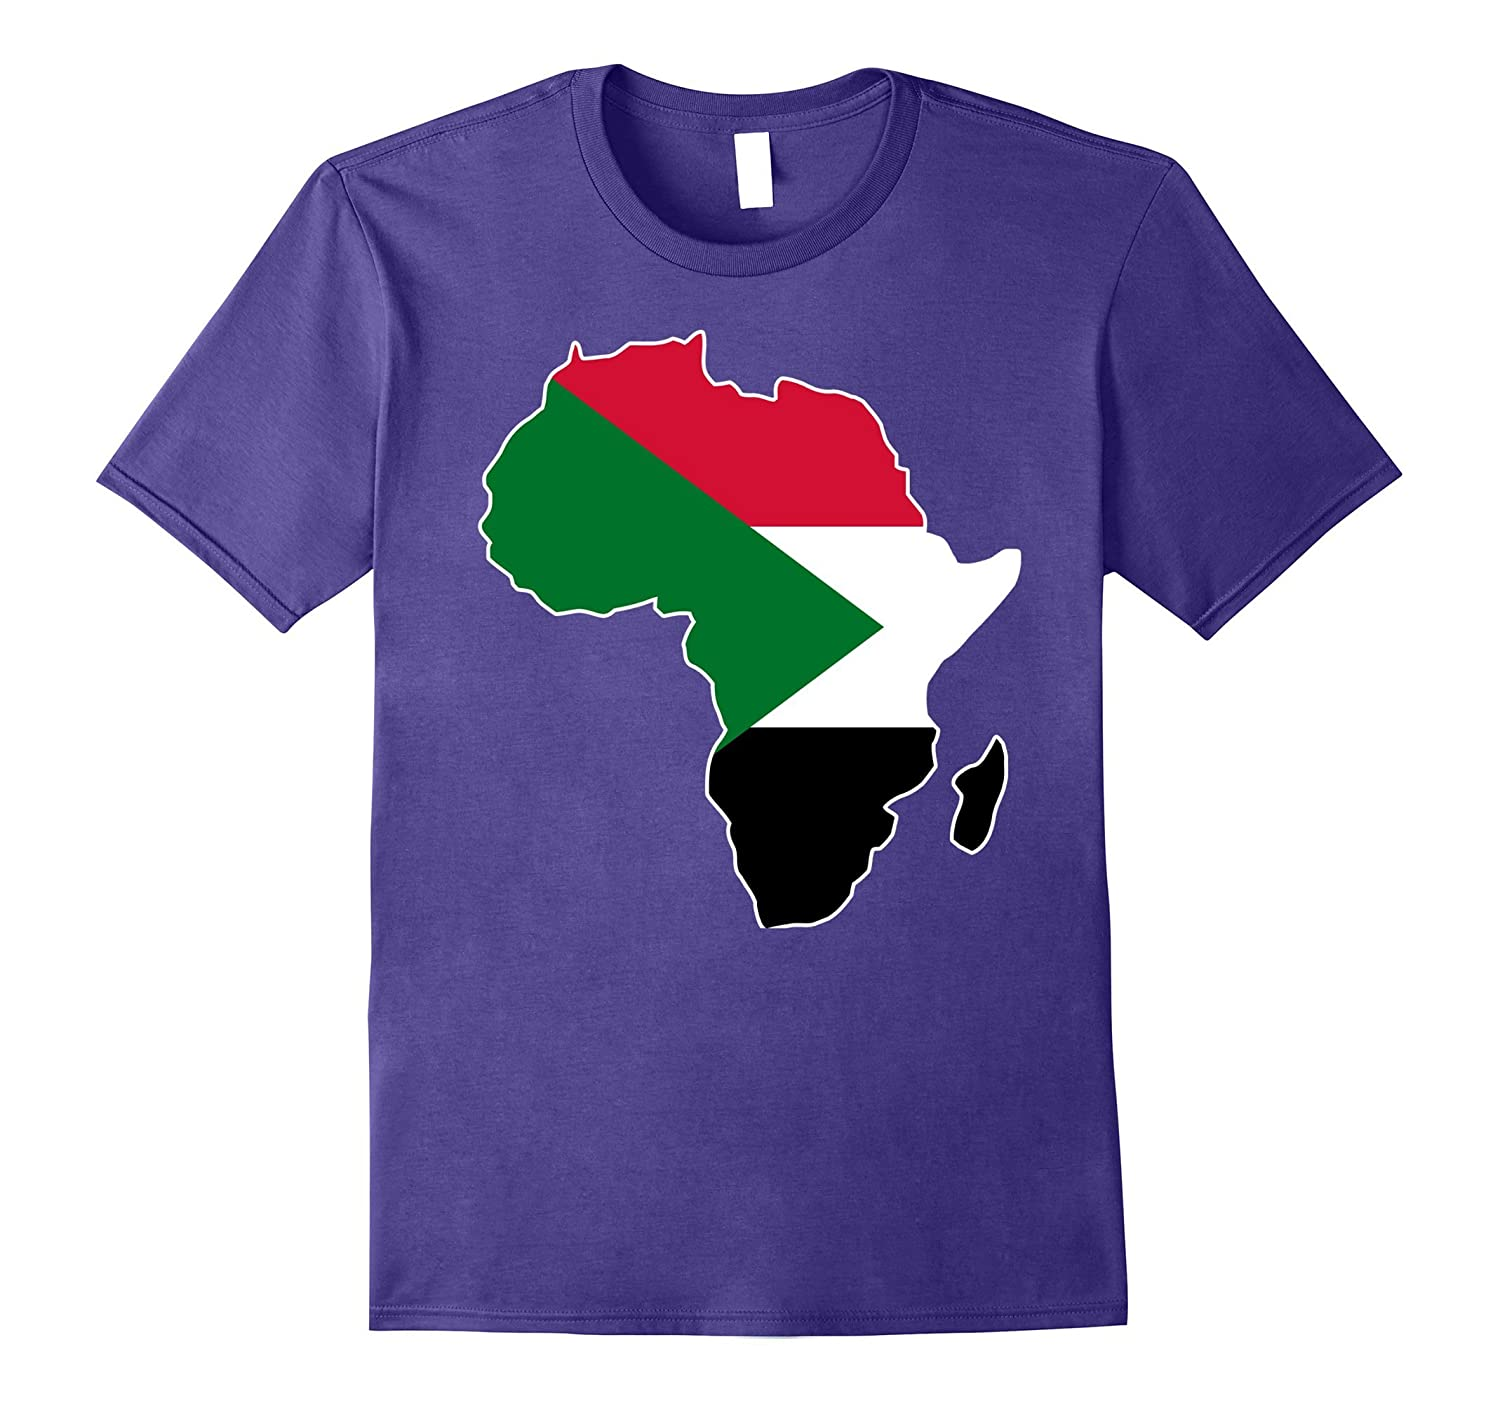 Sudan flag t-shirt Africa map t-shirt-BN